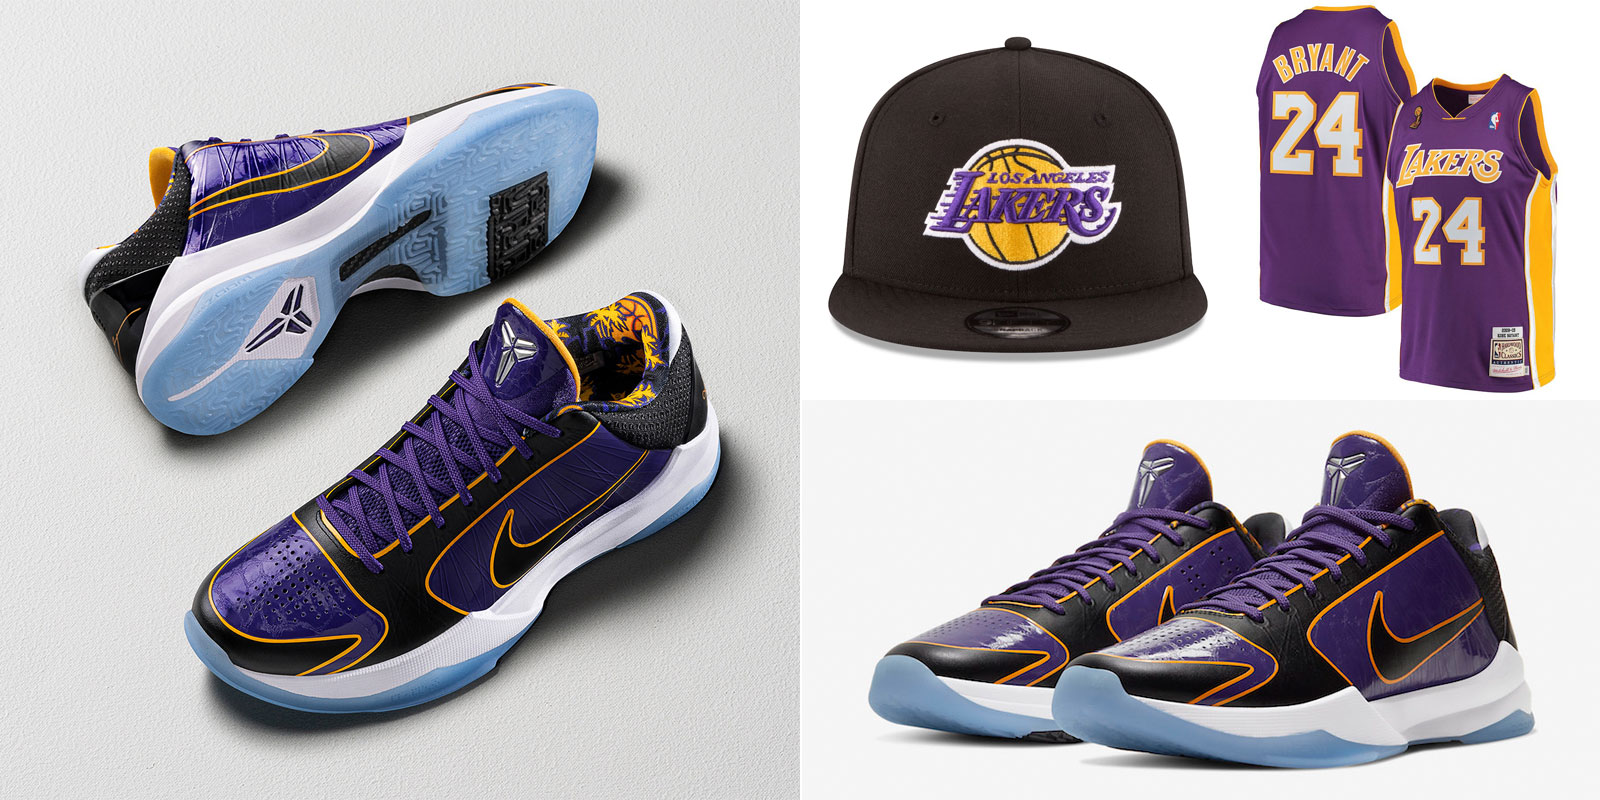 nike-kobe-5-protro-5x-champ-lakers-clothing